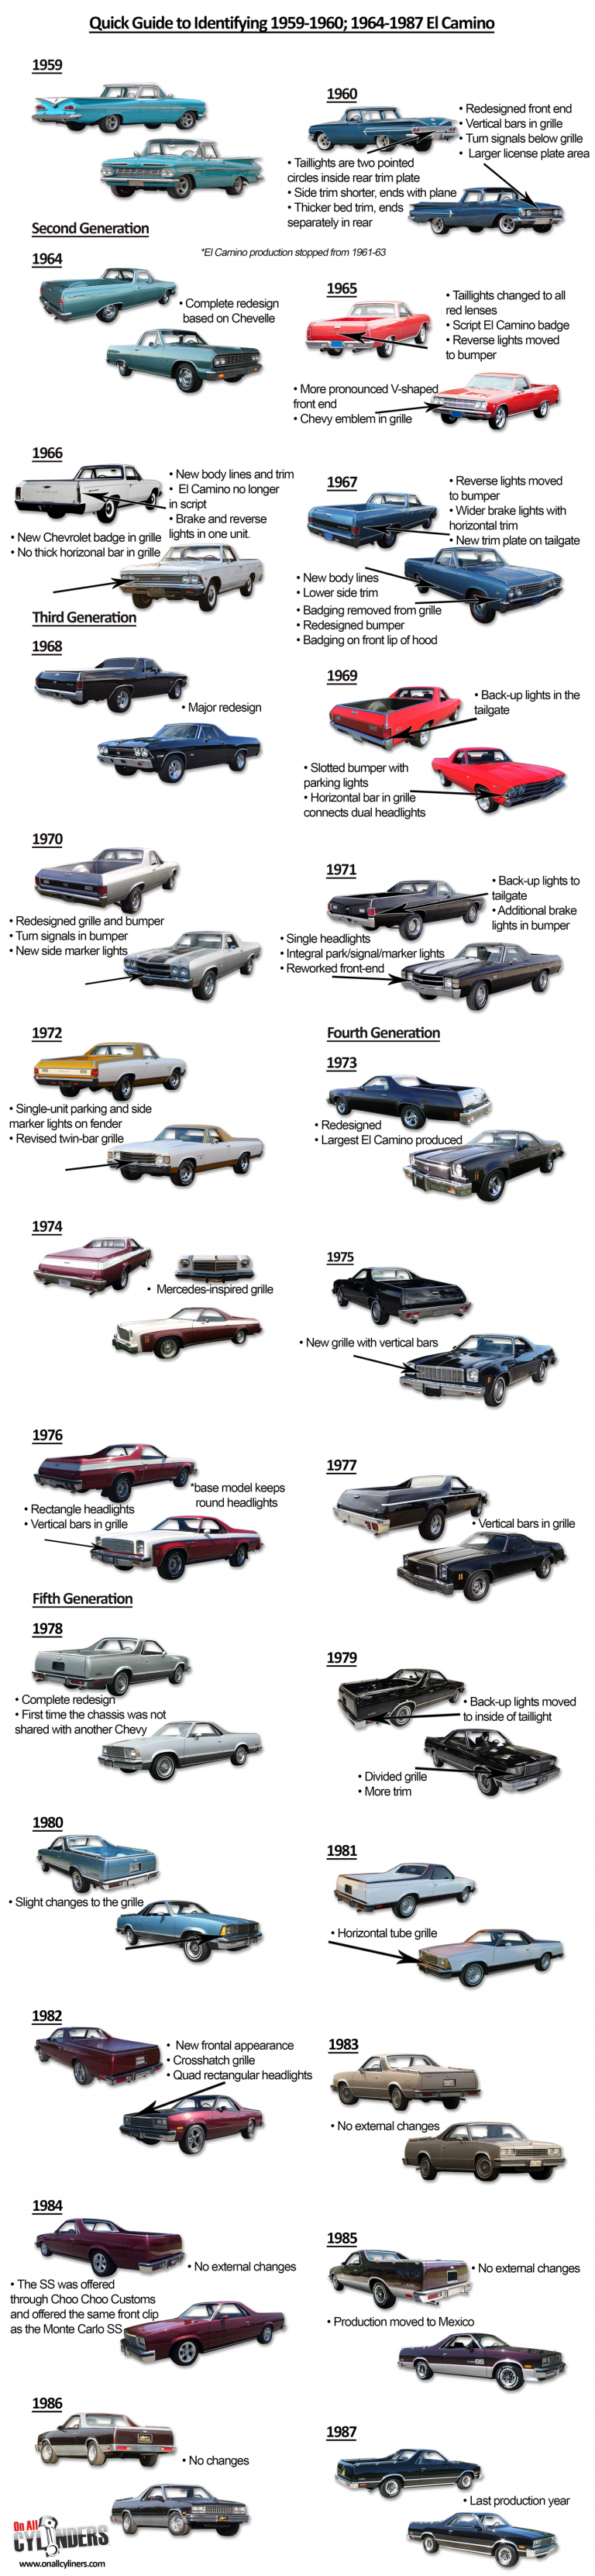 Ride Guides A Quick Guide To Identifying Chevy El Camino Model